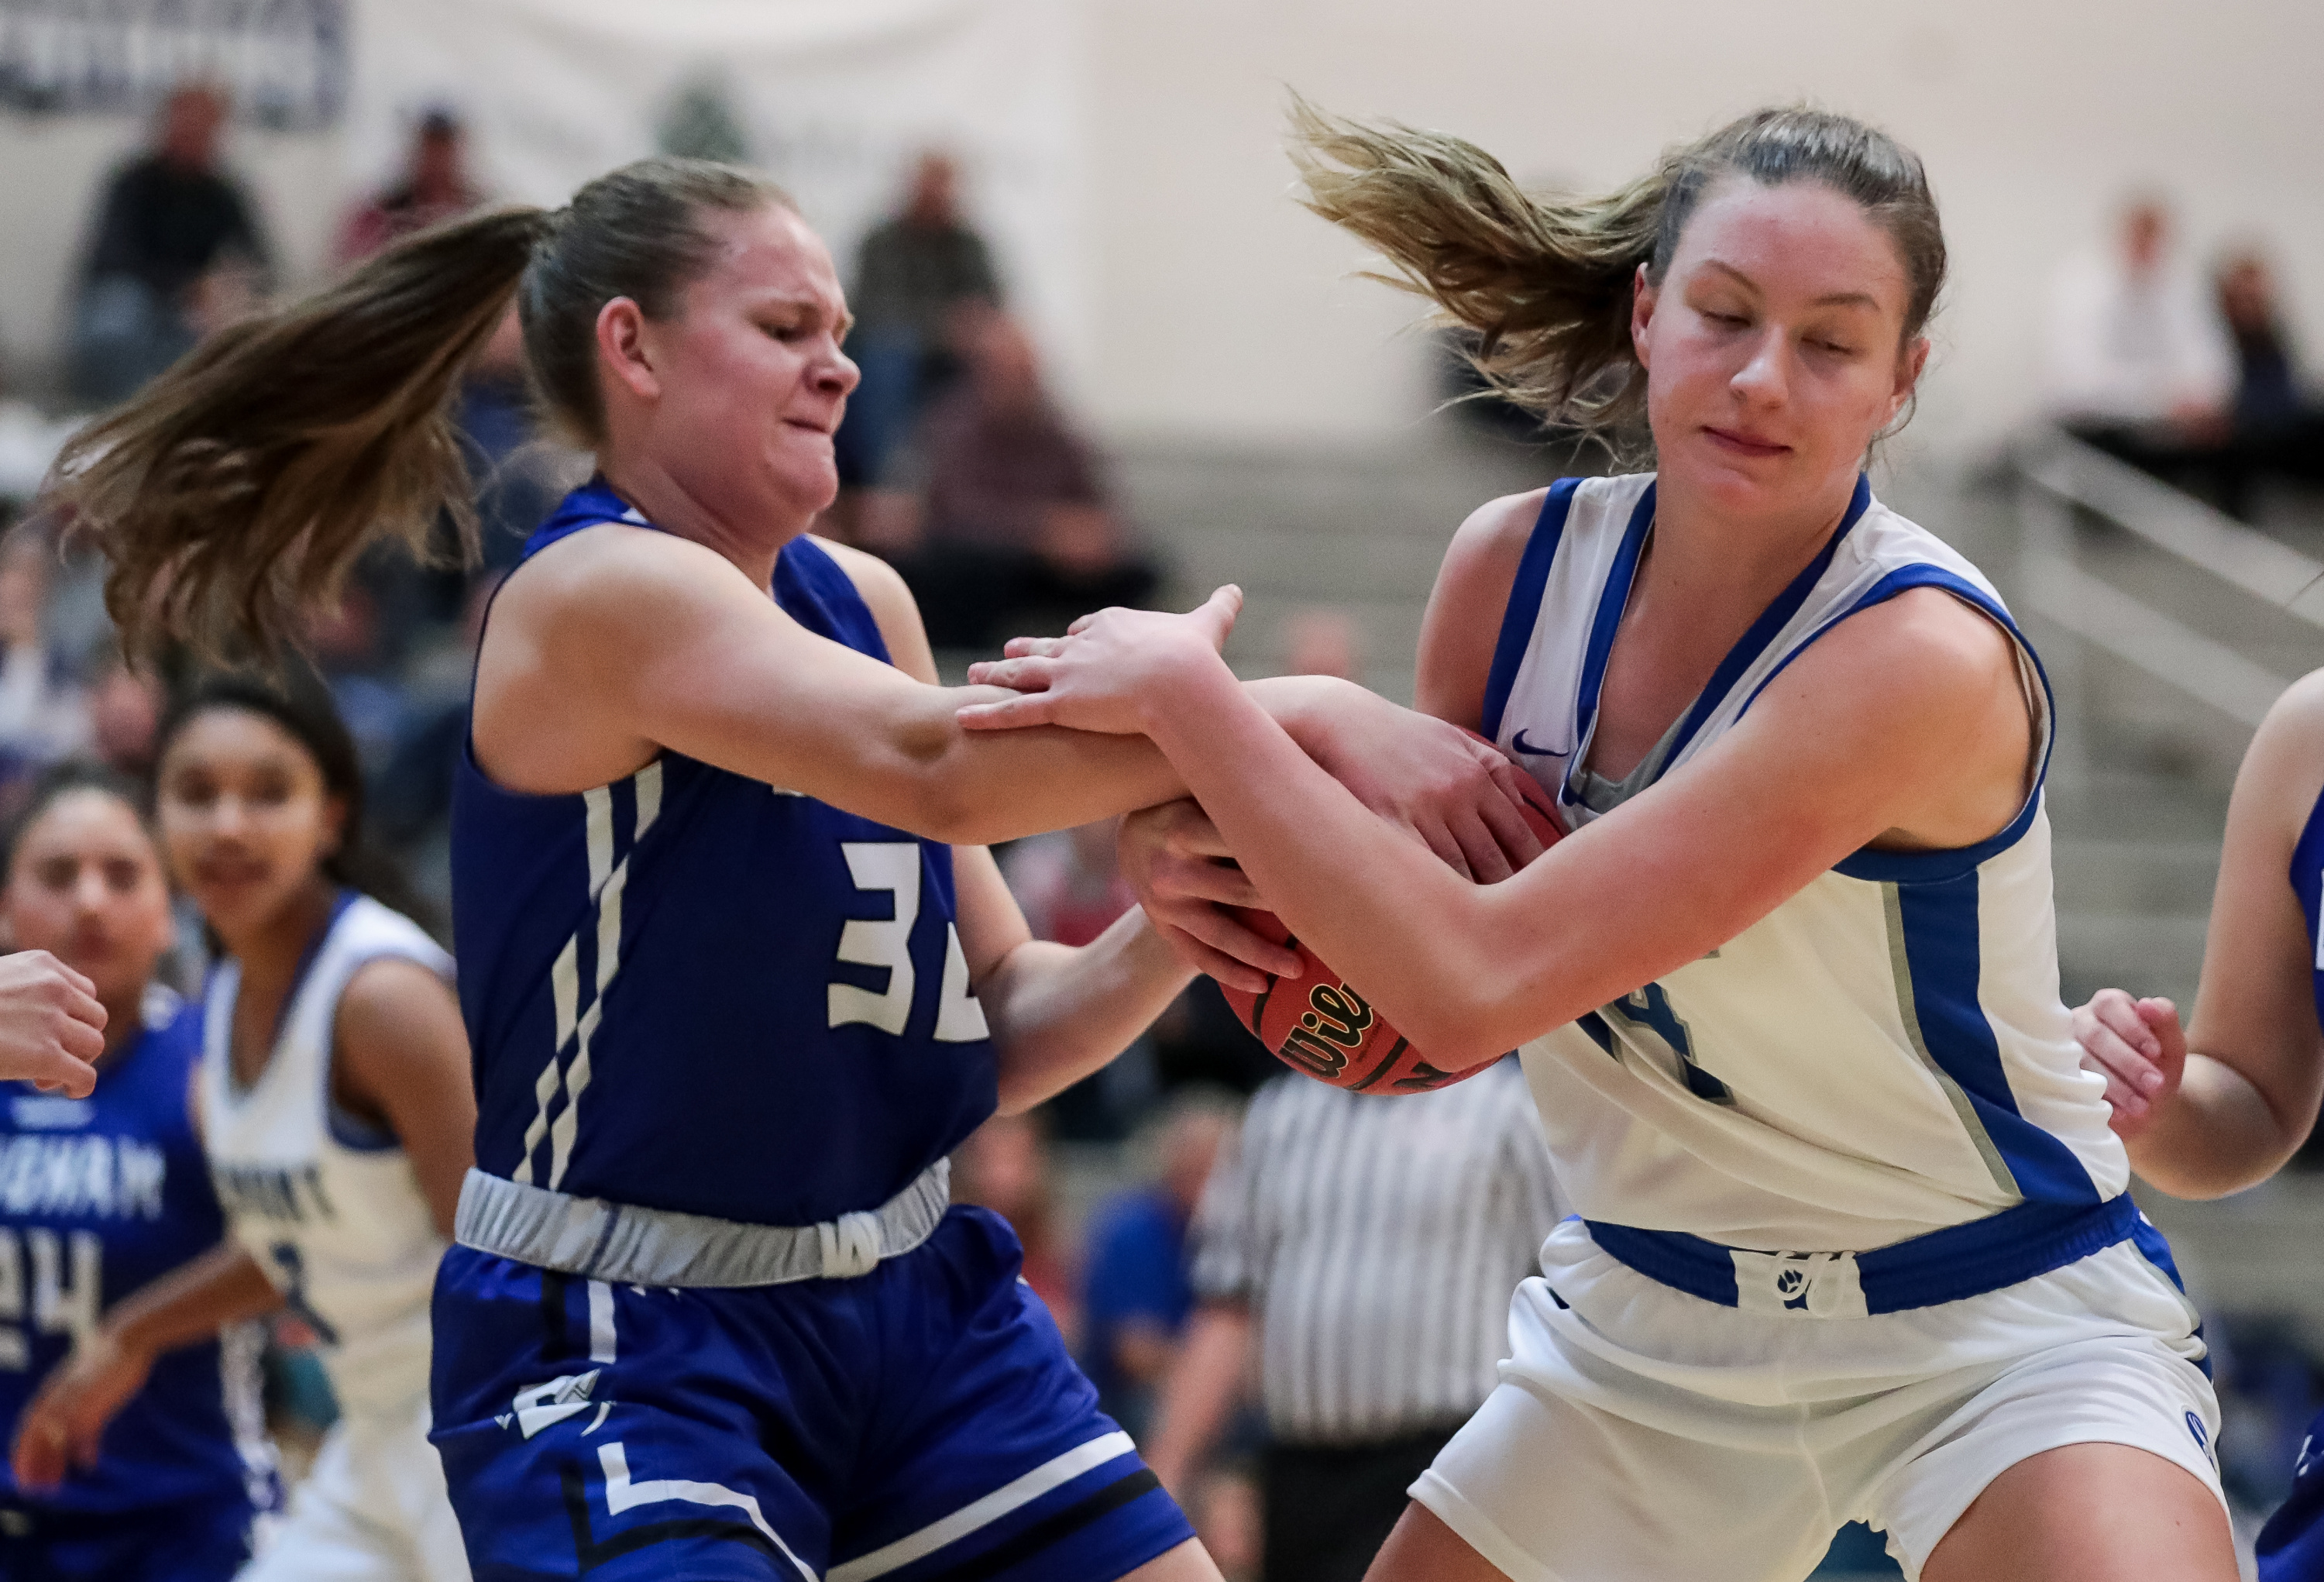 Bingham's Lauren Yeschick and Fremont's Maggie Mendelson compete for control of the ball in a high school girls basketball game at Fremont High School in Plain City on Tuesday, Dec. 3, 2019.